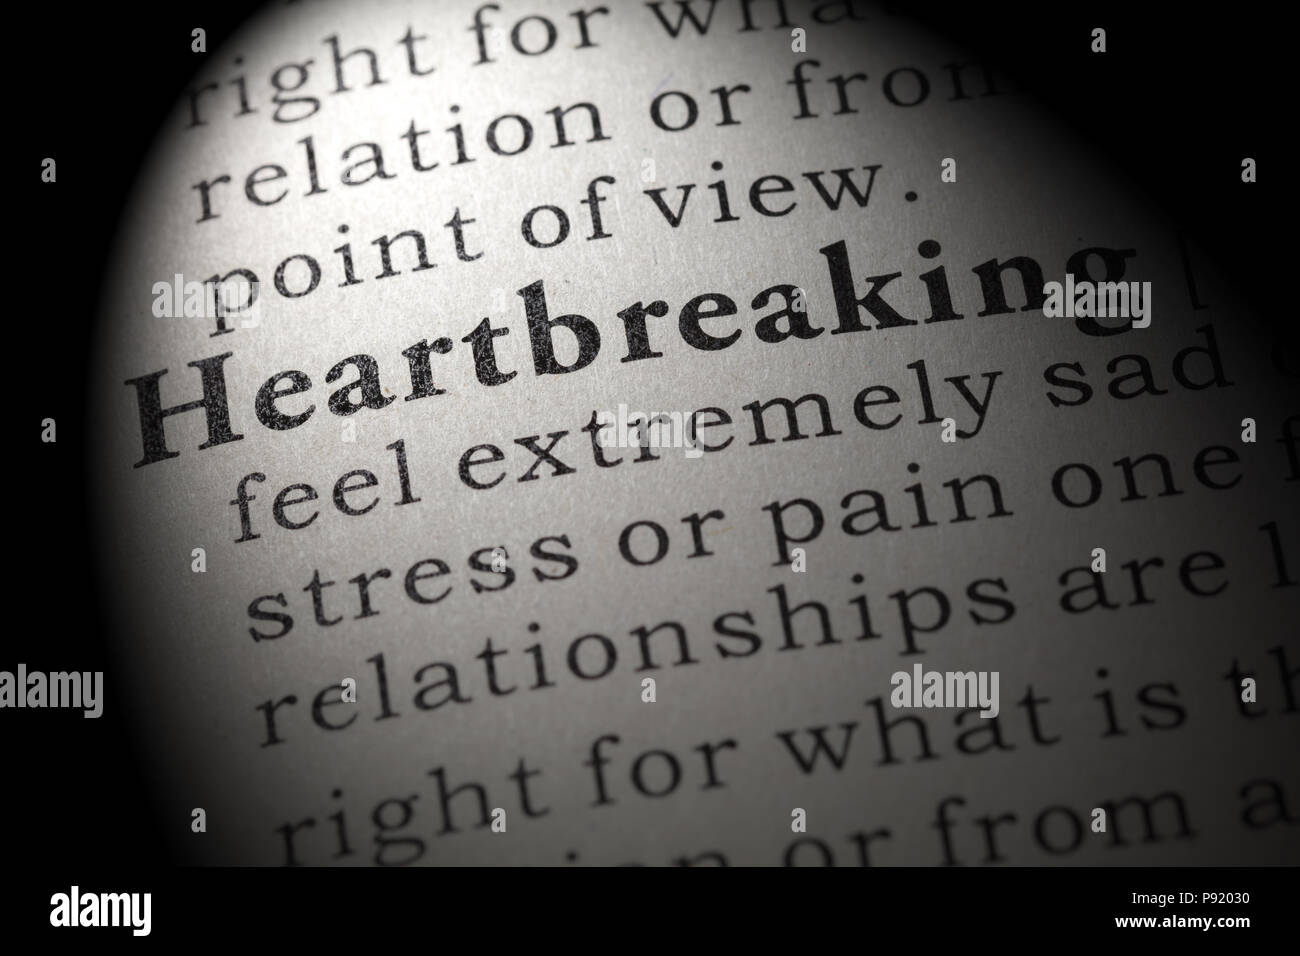 Fake Dictionary, Dictionary definition of the word heartbreaking. including key descriptive words. Stock Photo